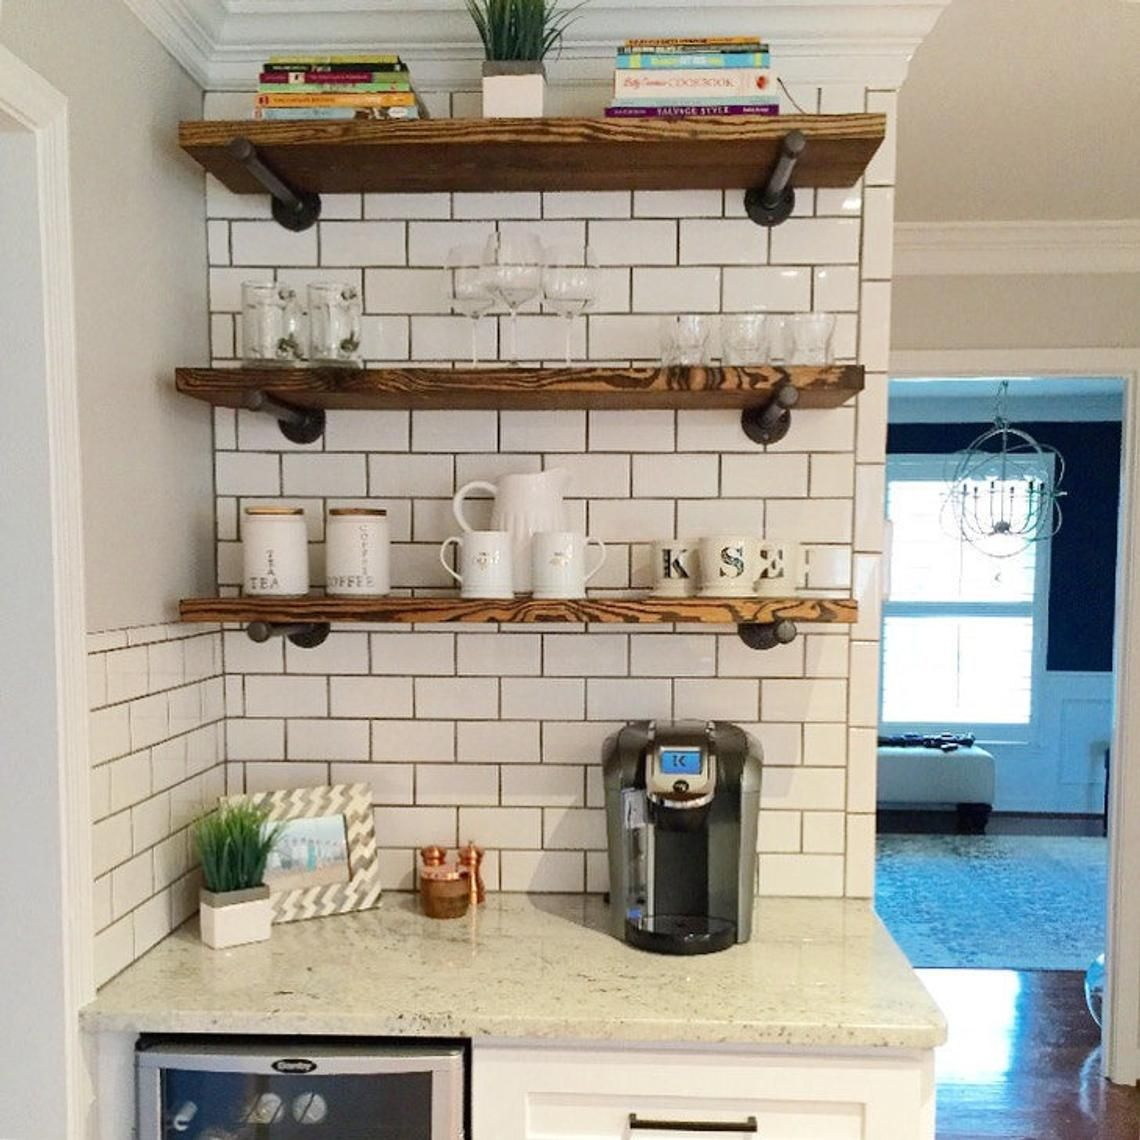 Industrial Floating Shelves 12 Depth Book Shelf Open Etsy Floating Shelves Kitchen Open Kitchen Shelves Kitchen Design Countertops